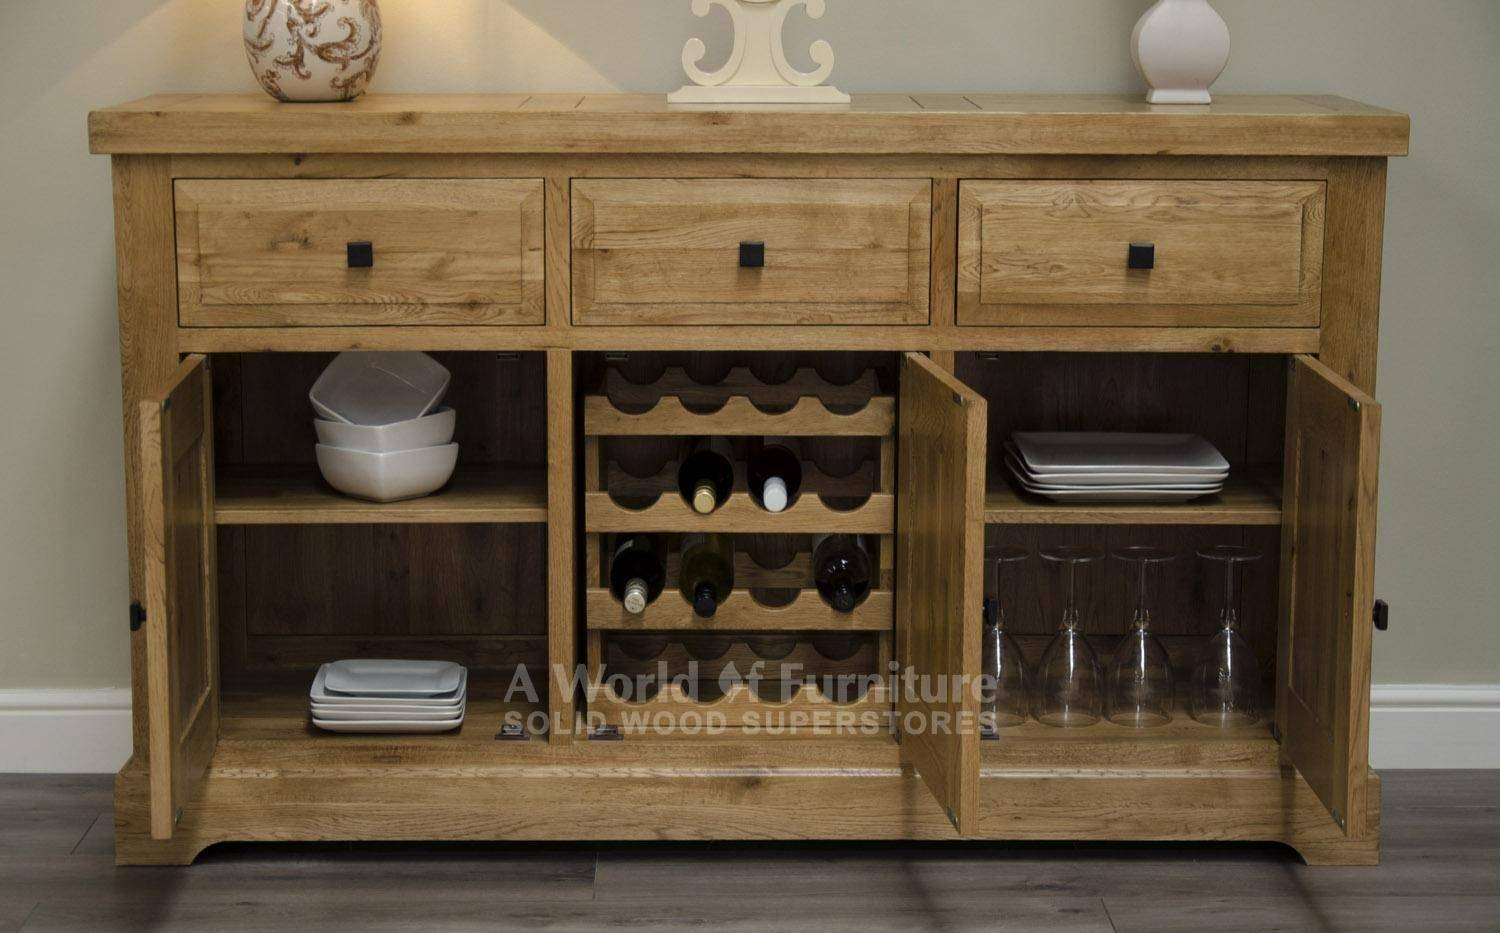 Rustic Deluxe 3 Door Sideboard With Internal Wine Rack | A World pertaining to Sideboards With Wine Rack (Image 13 of 15)